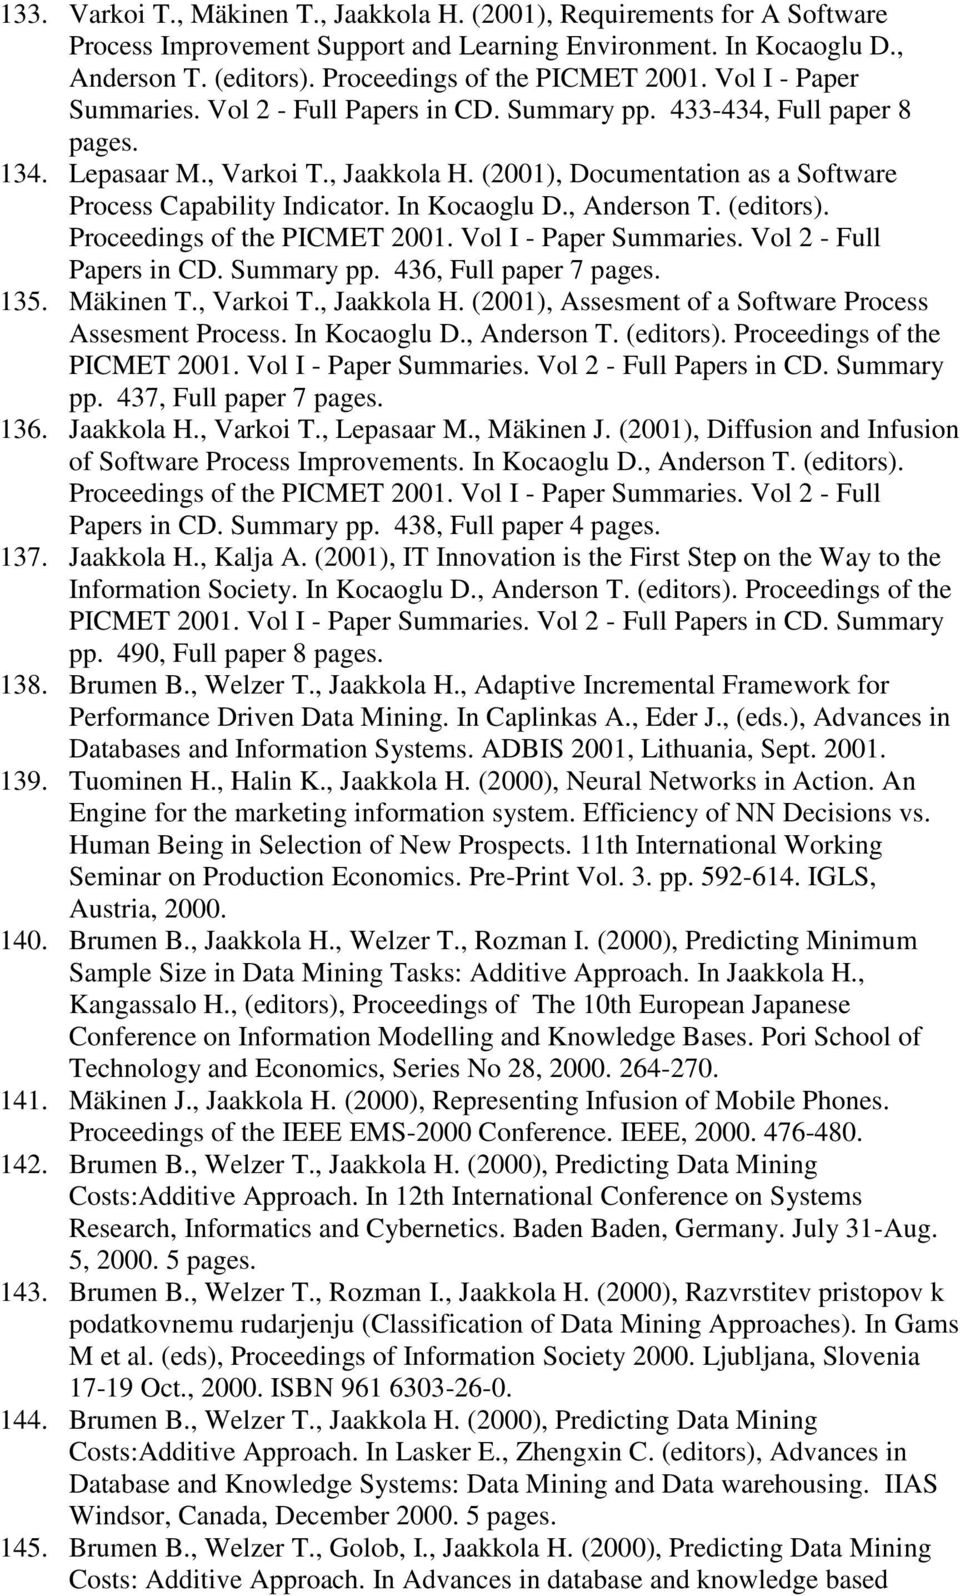 In Kocaoglu D., Anderson T. (editors). Proceedings of the PICMET 2001. Vol I - Paper Summaries. Vol 2 - Full Papers in CD. Summary pp. 436, Full paper 7 pages. 135. Mäkinen T., Varkoi T., Jaakkola H.